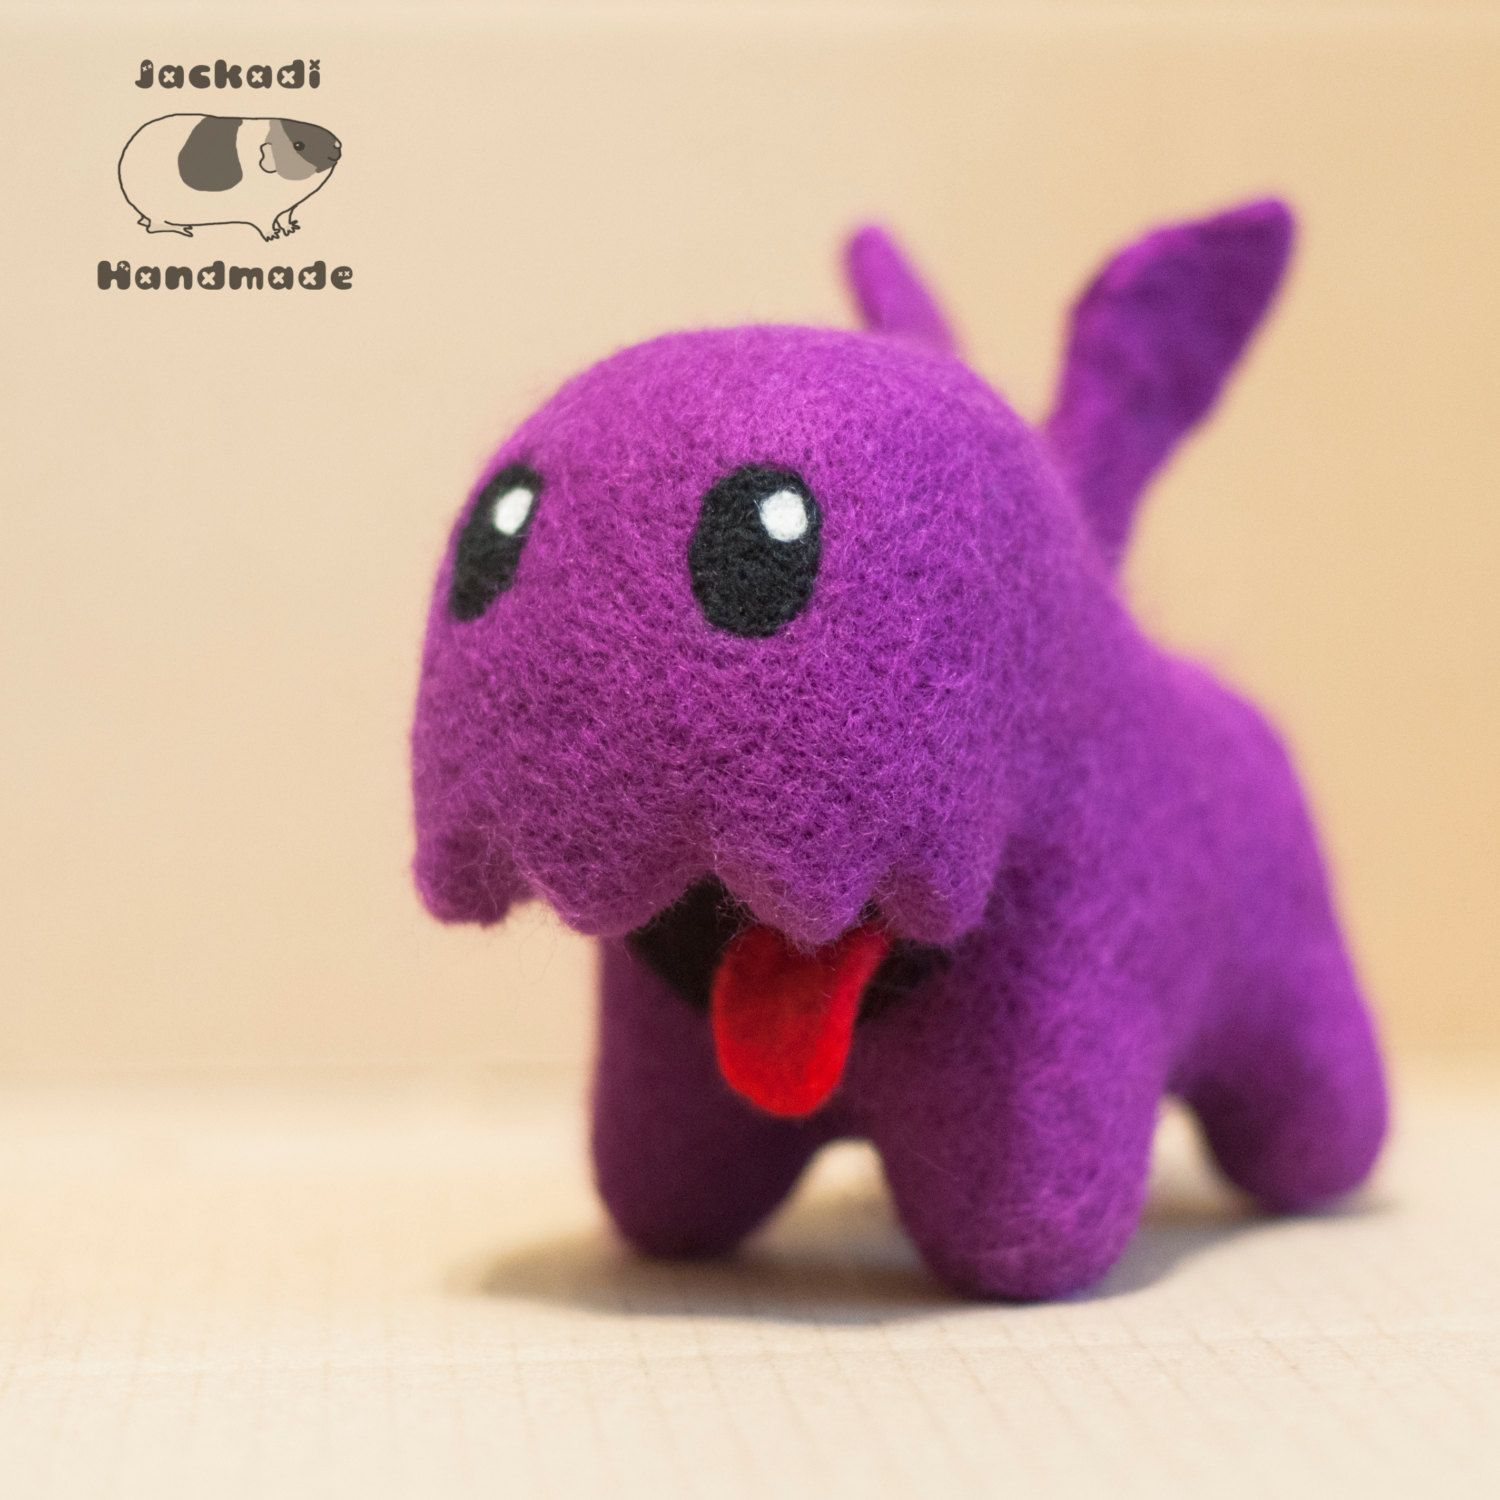 Zergling from StarCraft Blizzard - zerg plush - needle felted ...